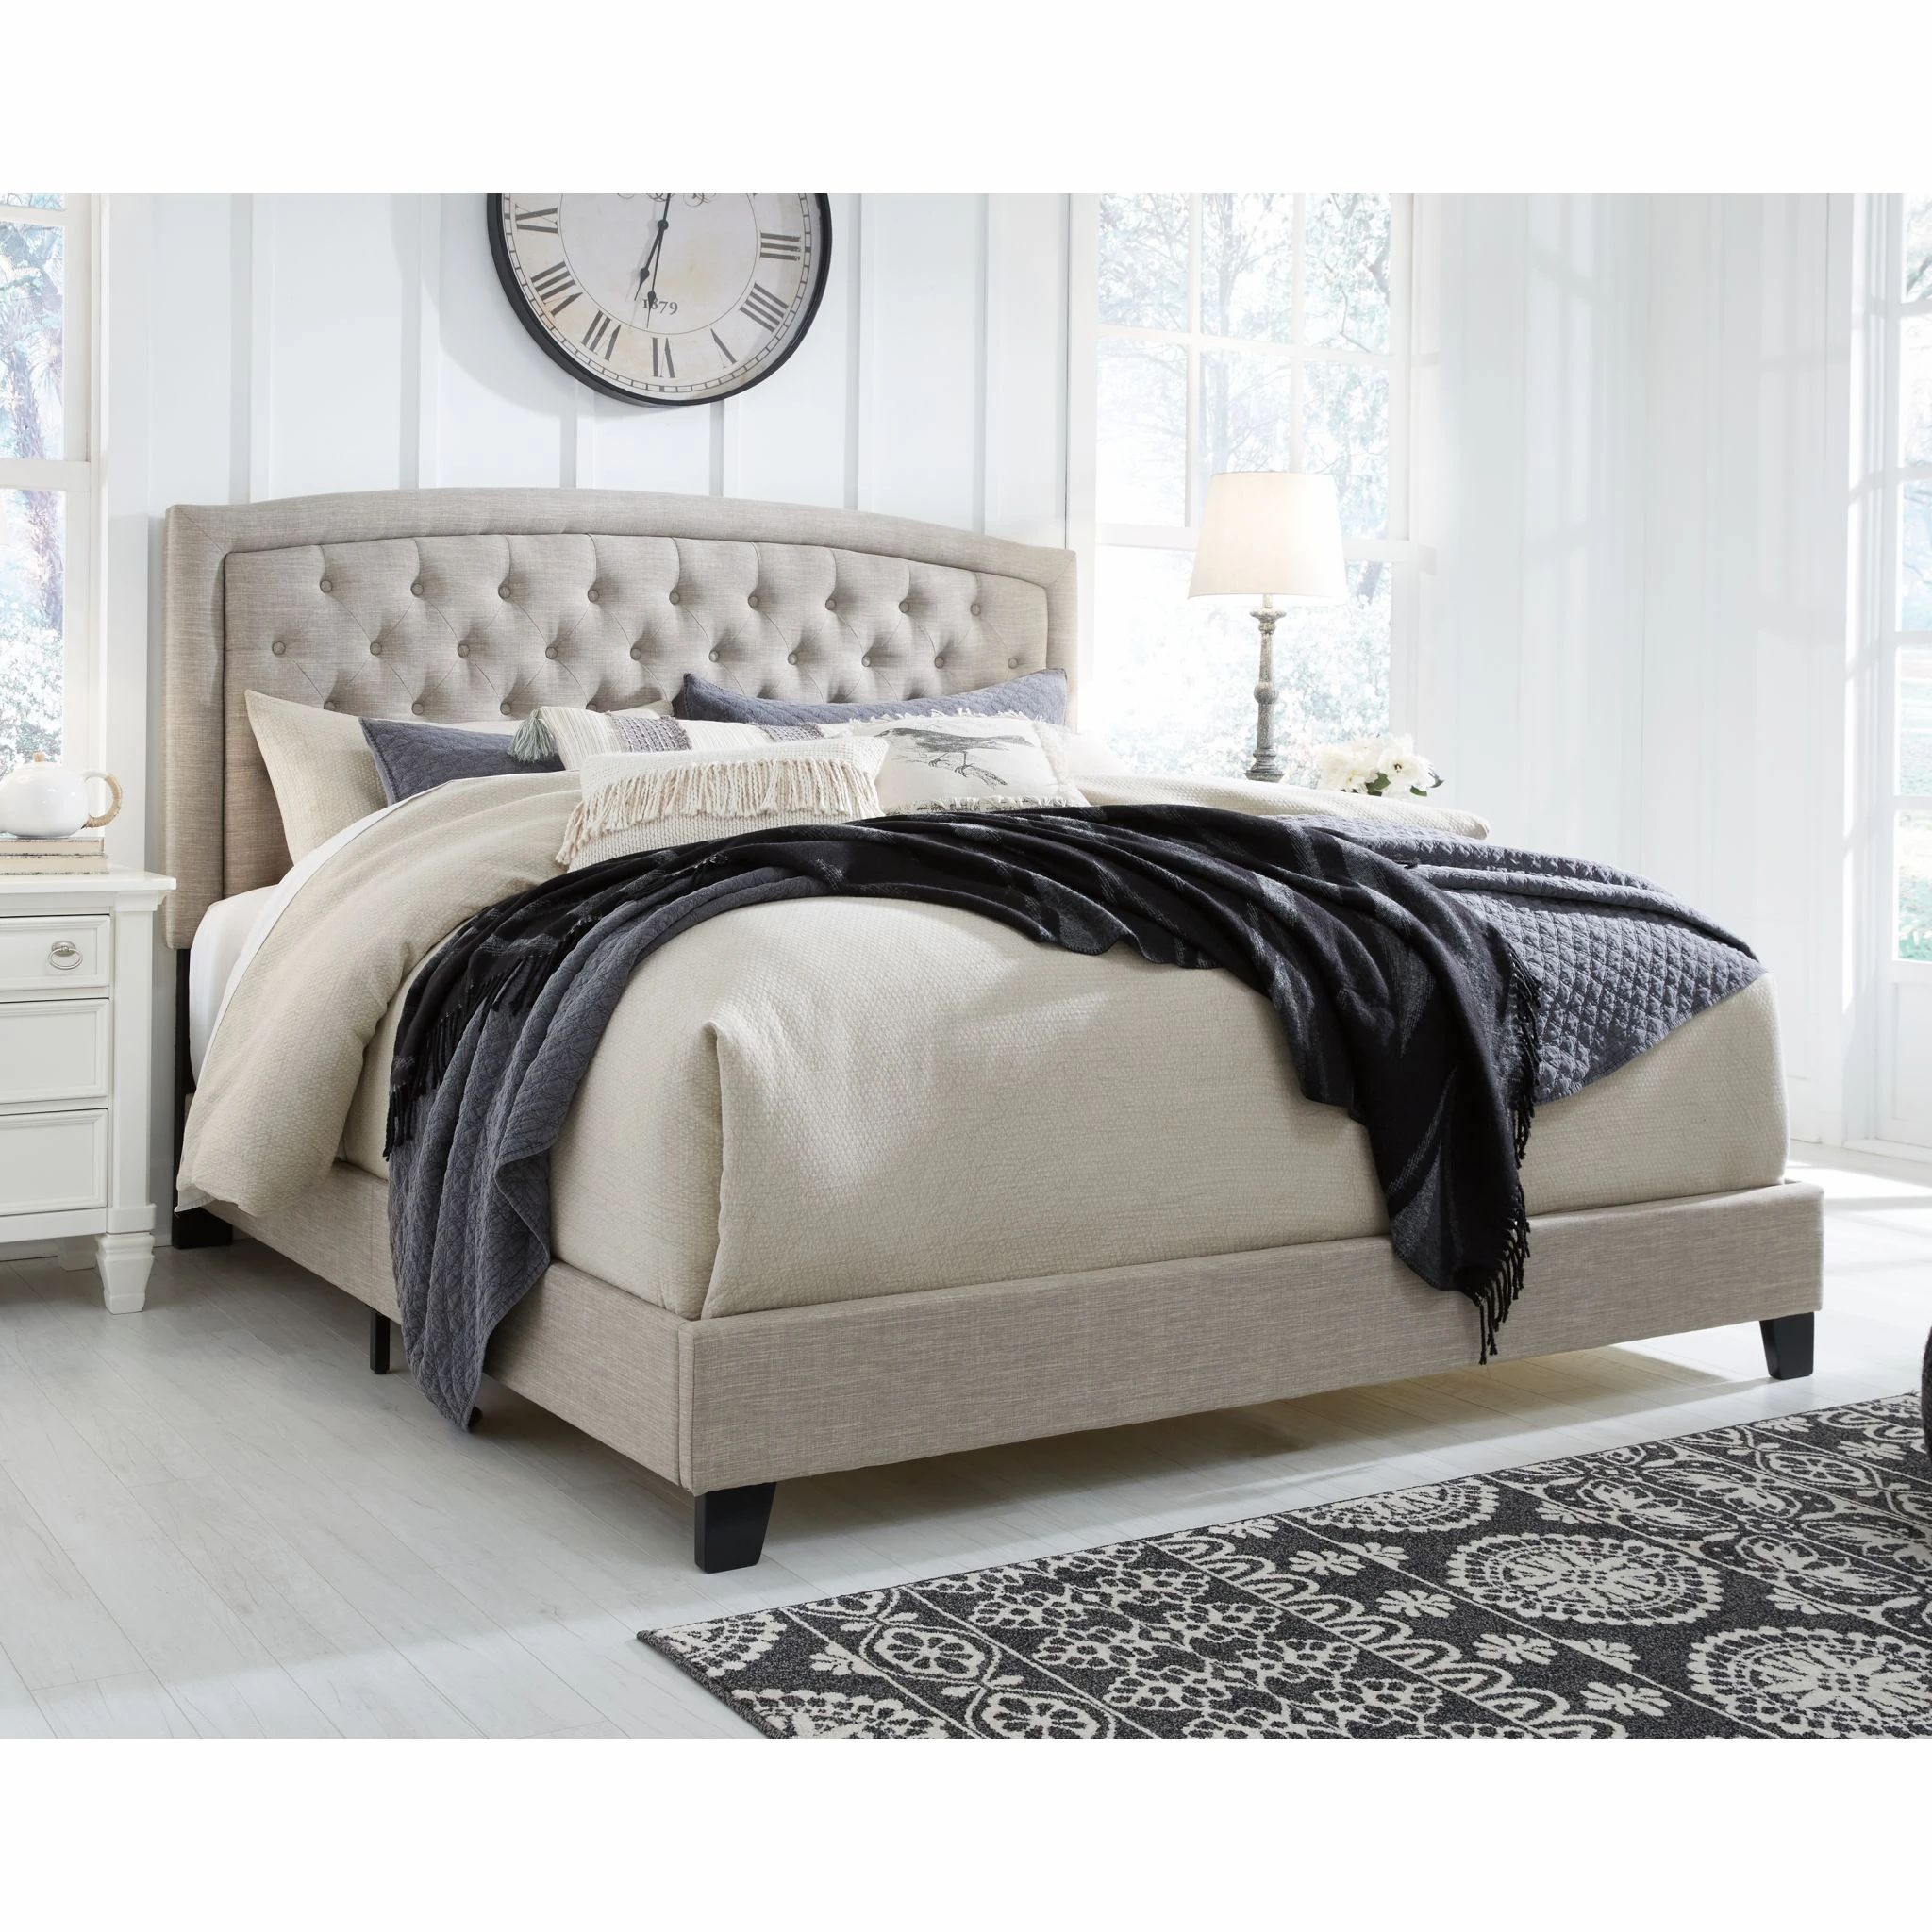 Jerary King Bed Gray in 2020 Queen upholstered bed